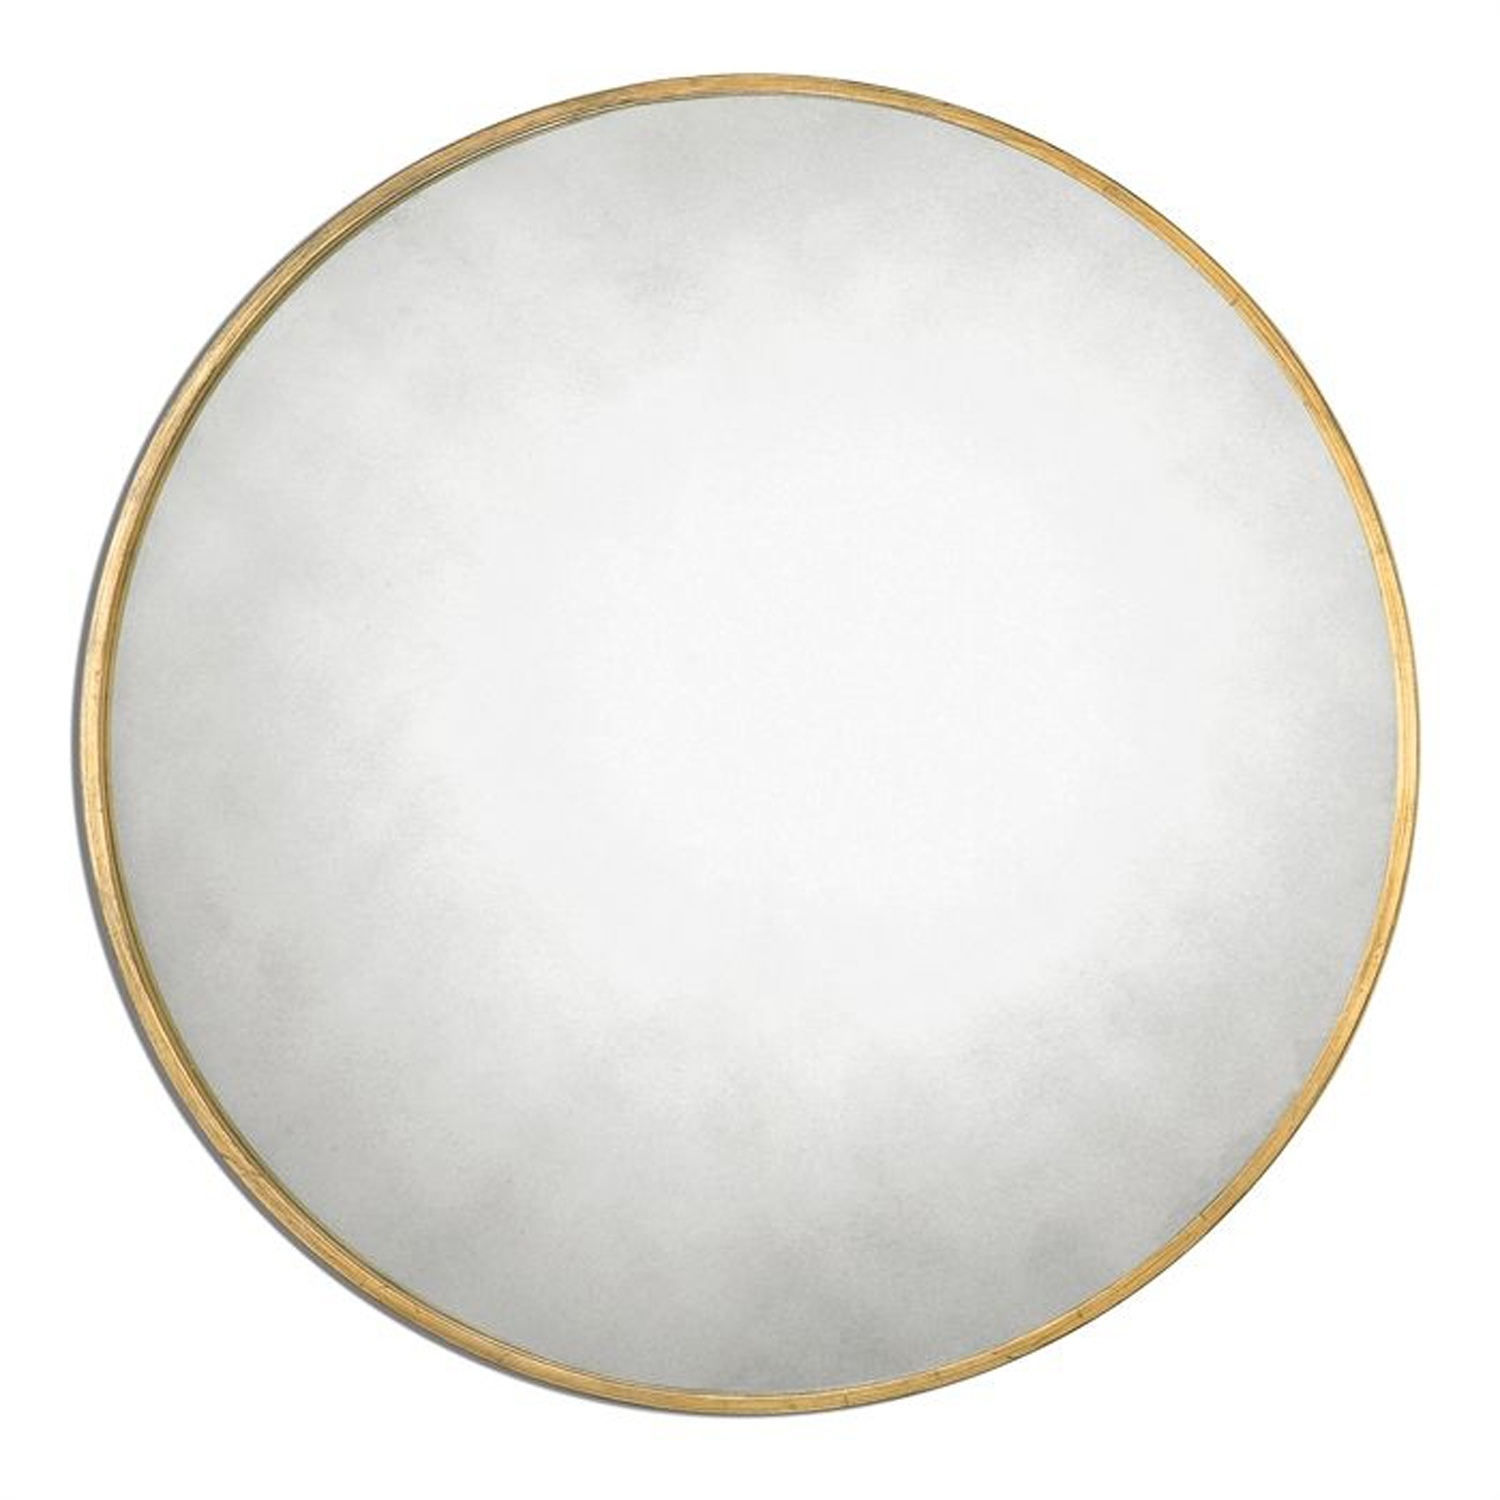 Junius Round Gold Round Mirror Uttermost Round Mirrors Home Decor Inside Antique Round Mirrors (View 14 of 15)